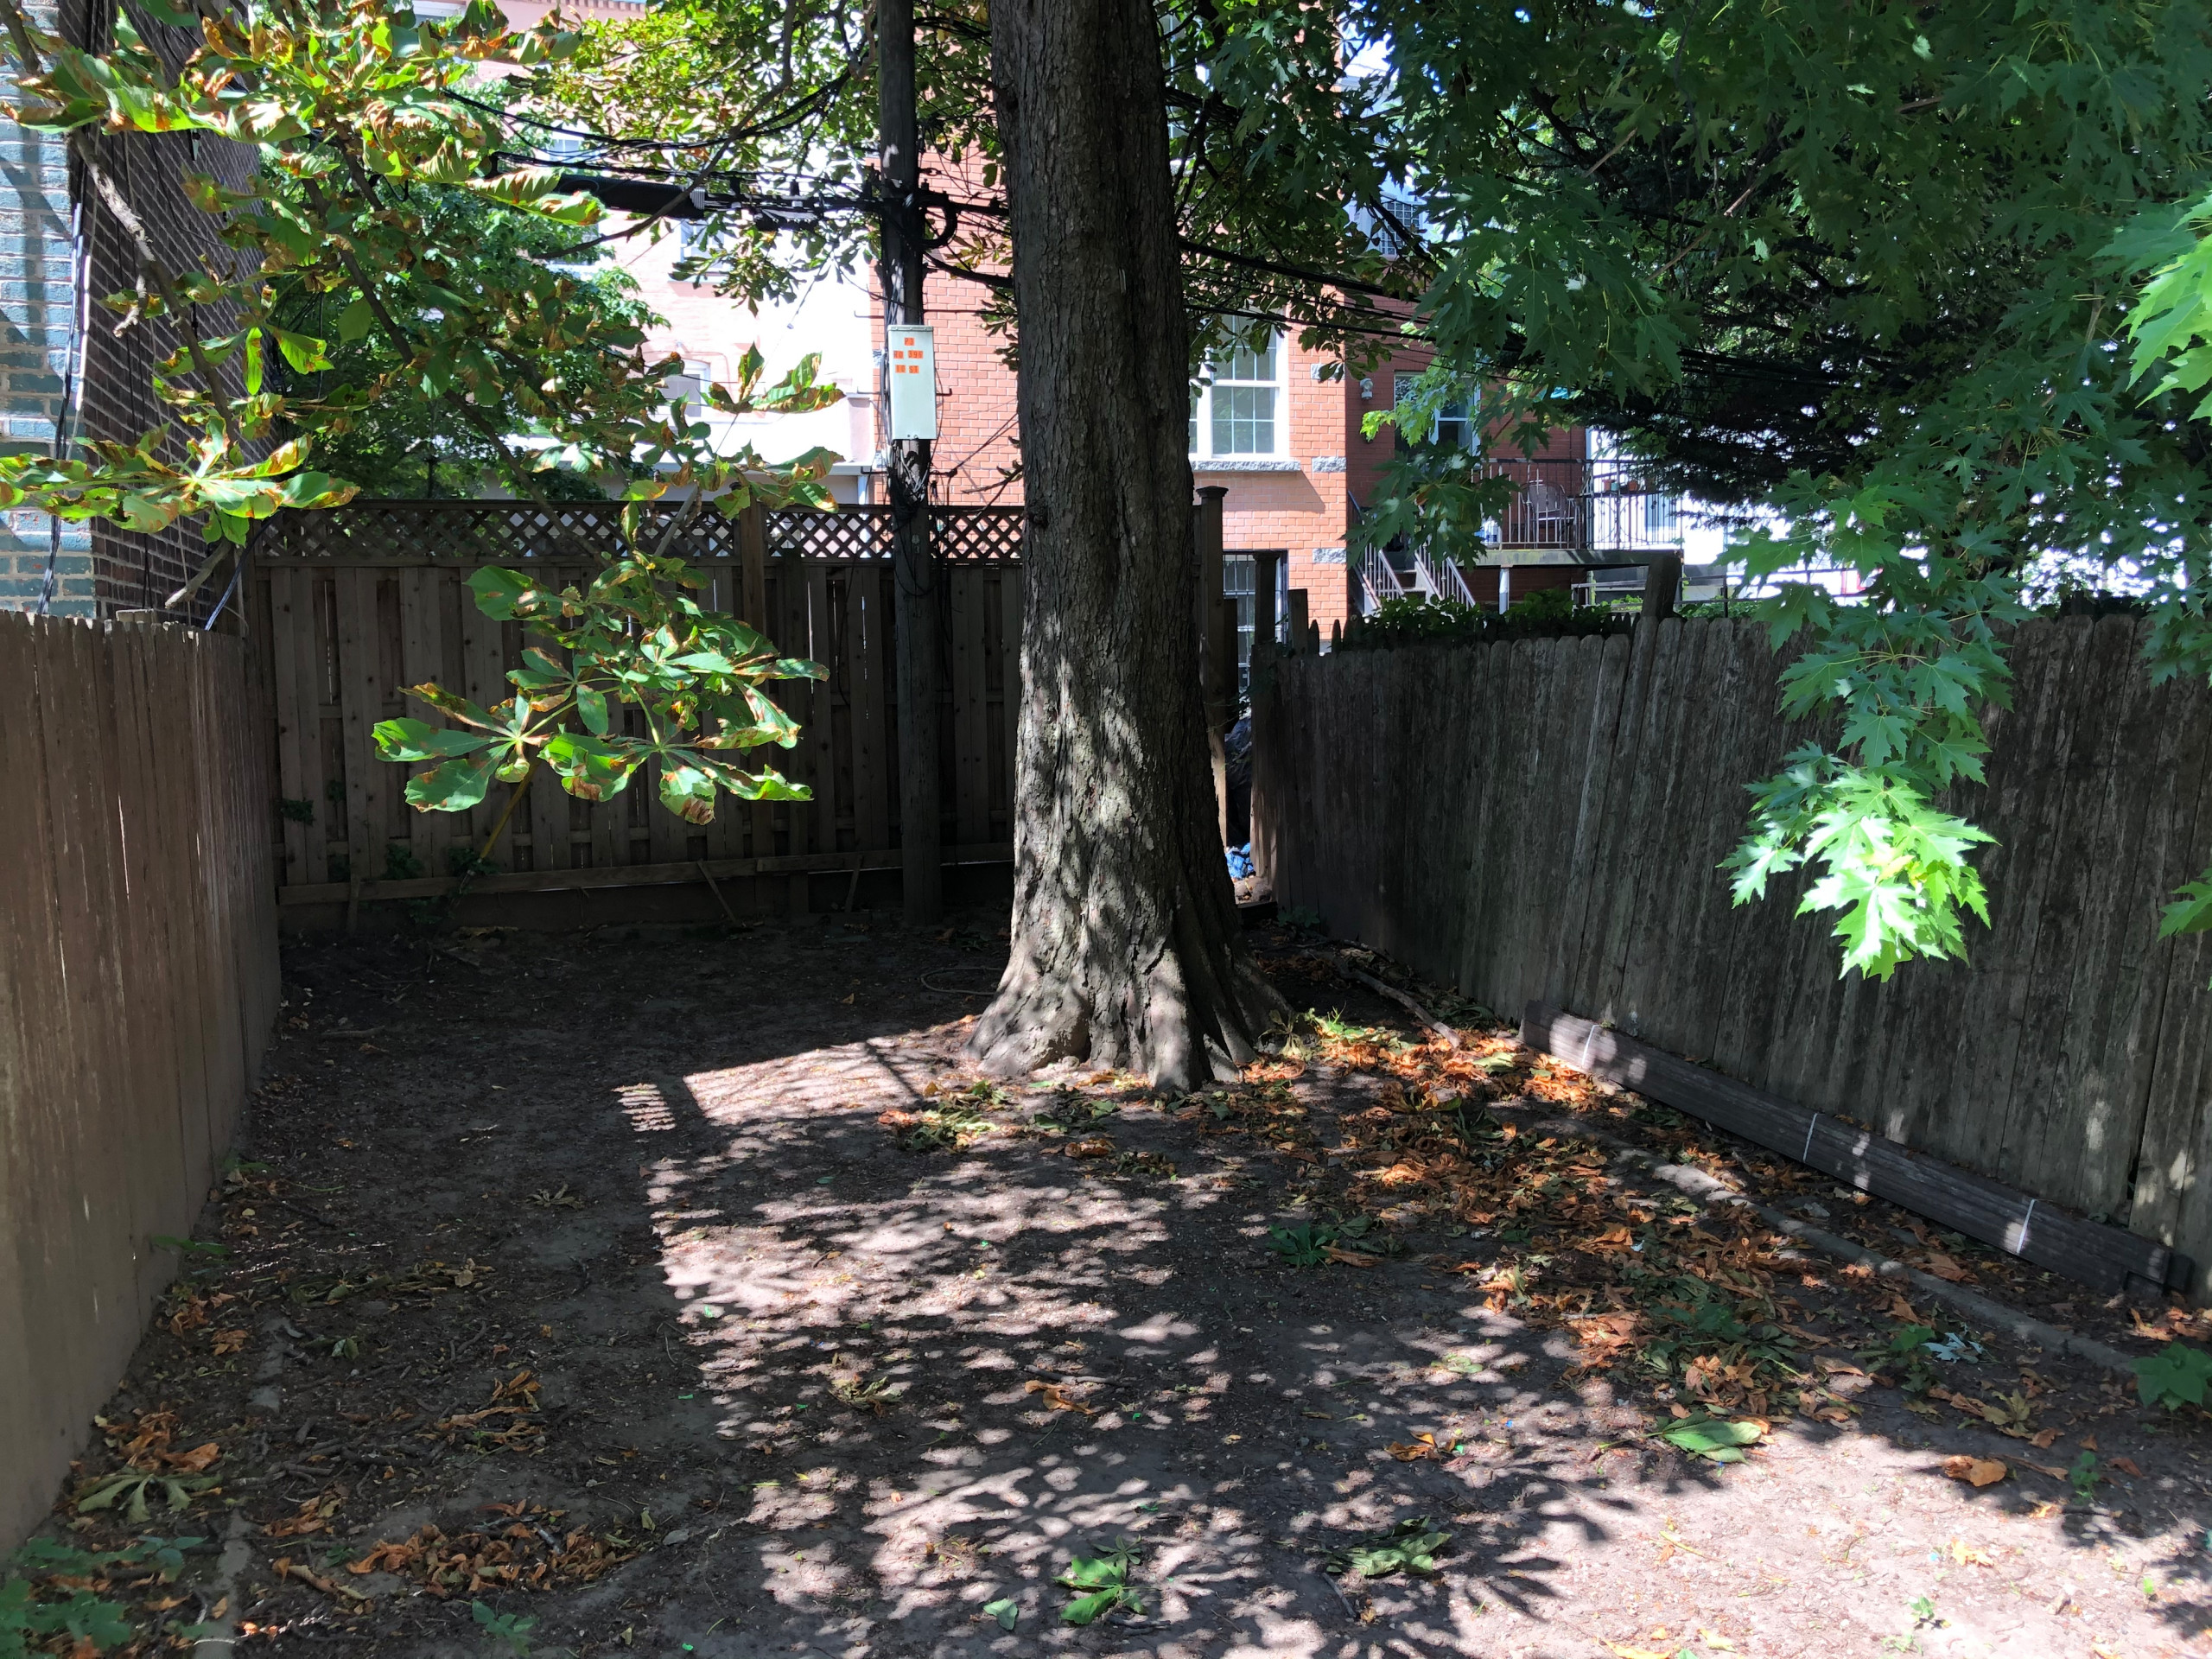 Park Slope Brooklyn - Shady Garden and Playground